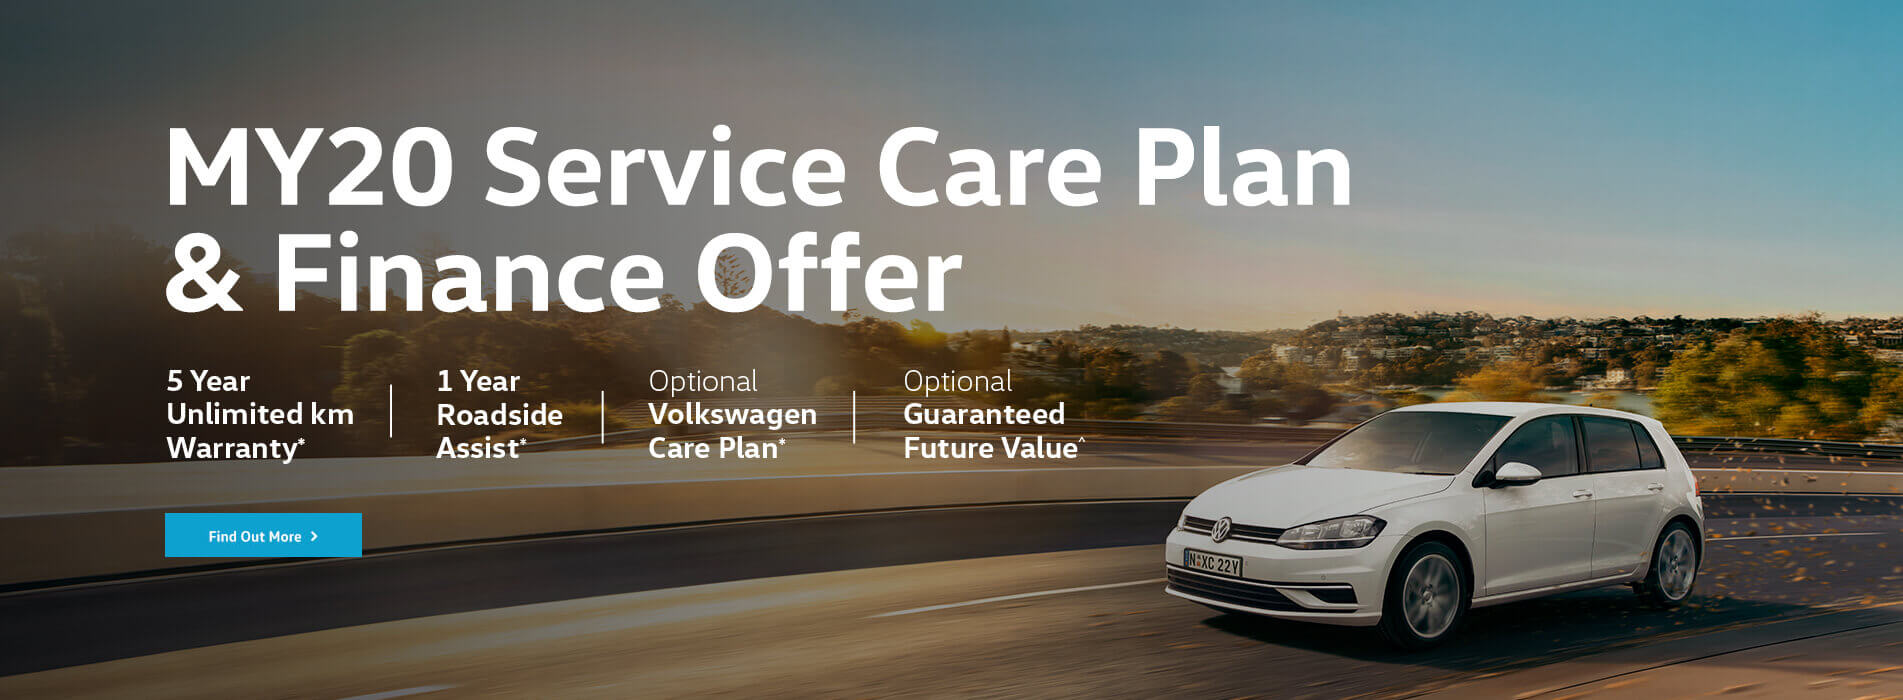 My20 Service Care Plans and Finance Offer